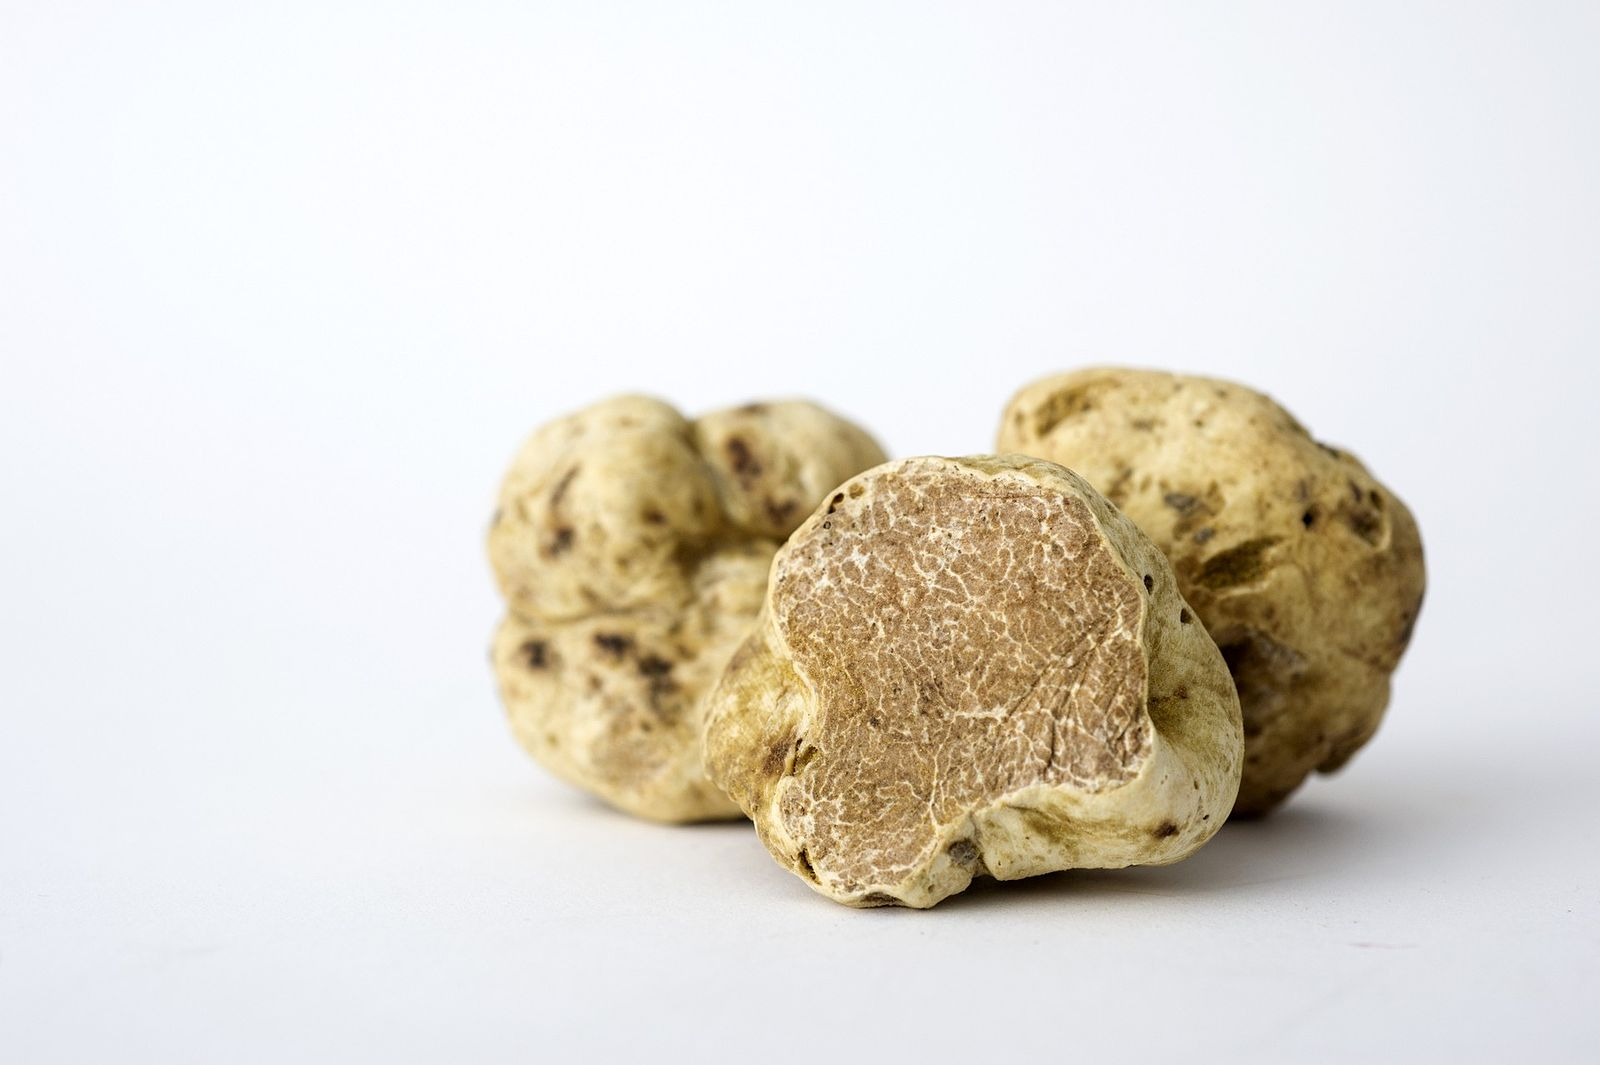 White Truffle. Image from Wikimedia Commons, author Evan Sung.